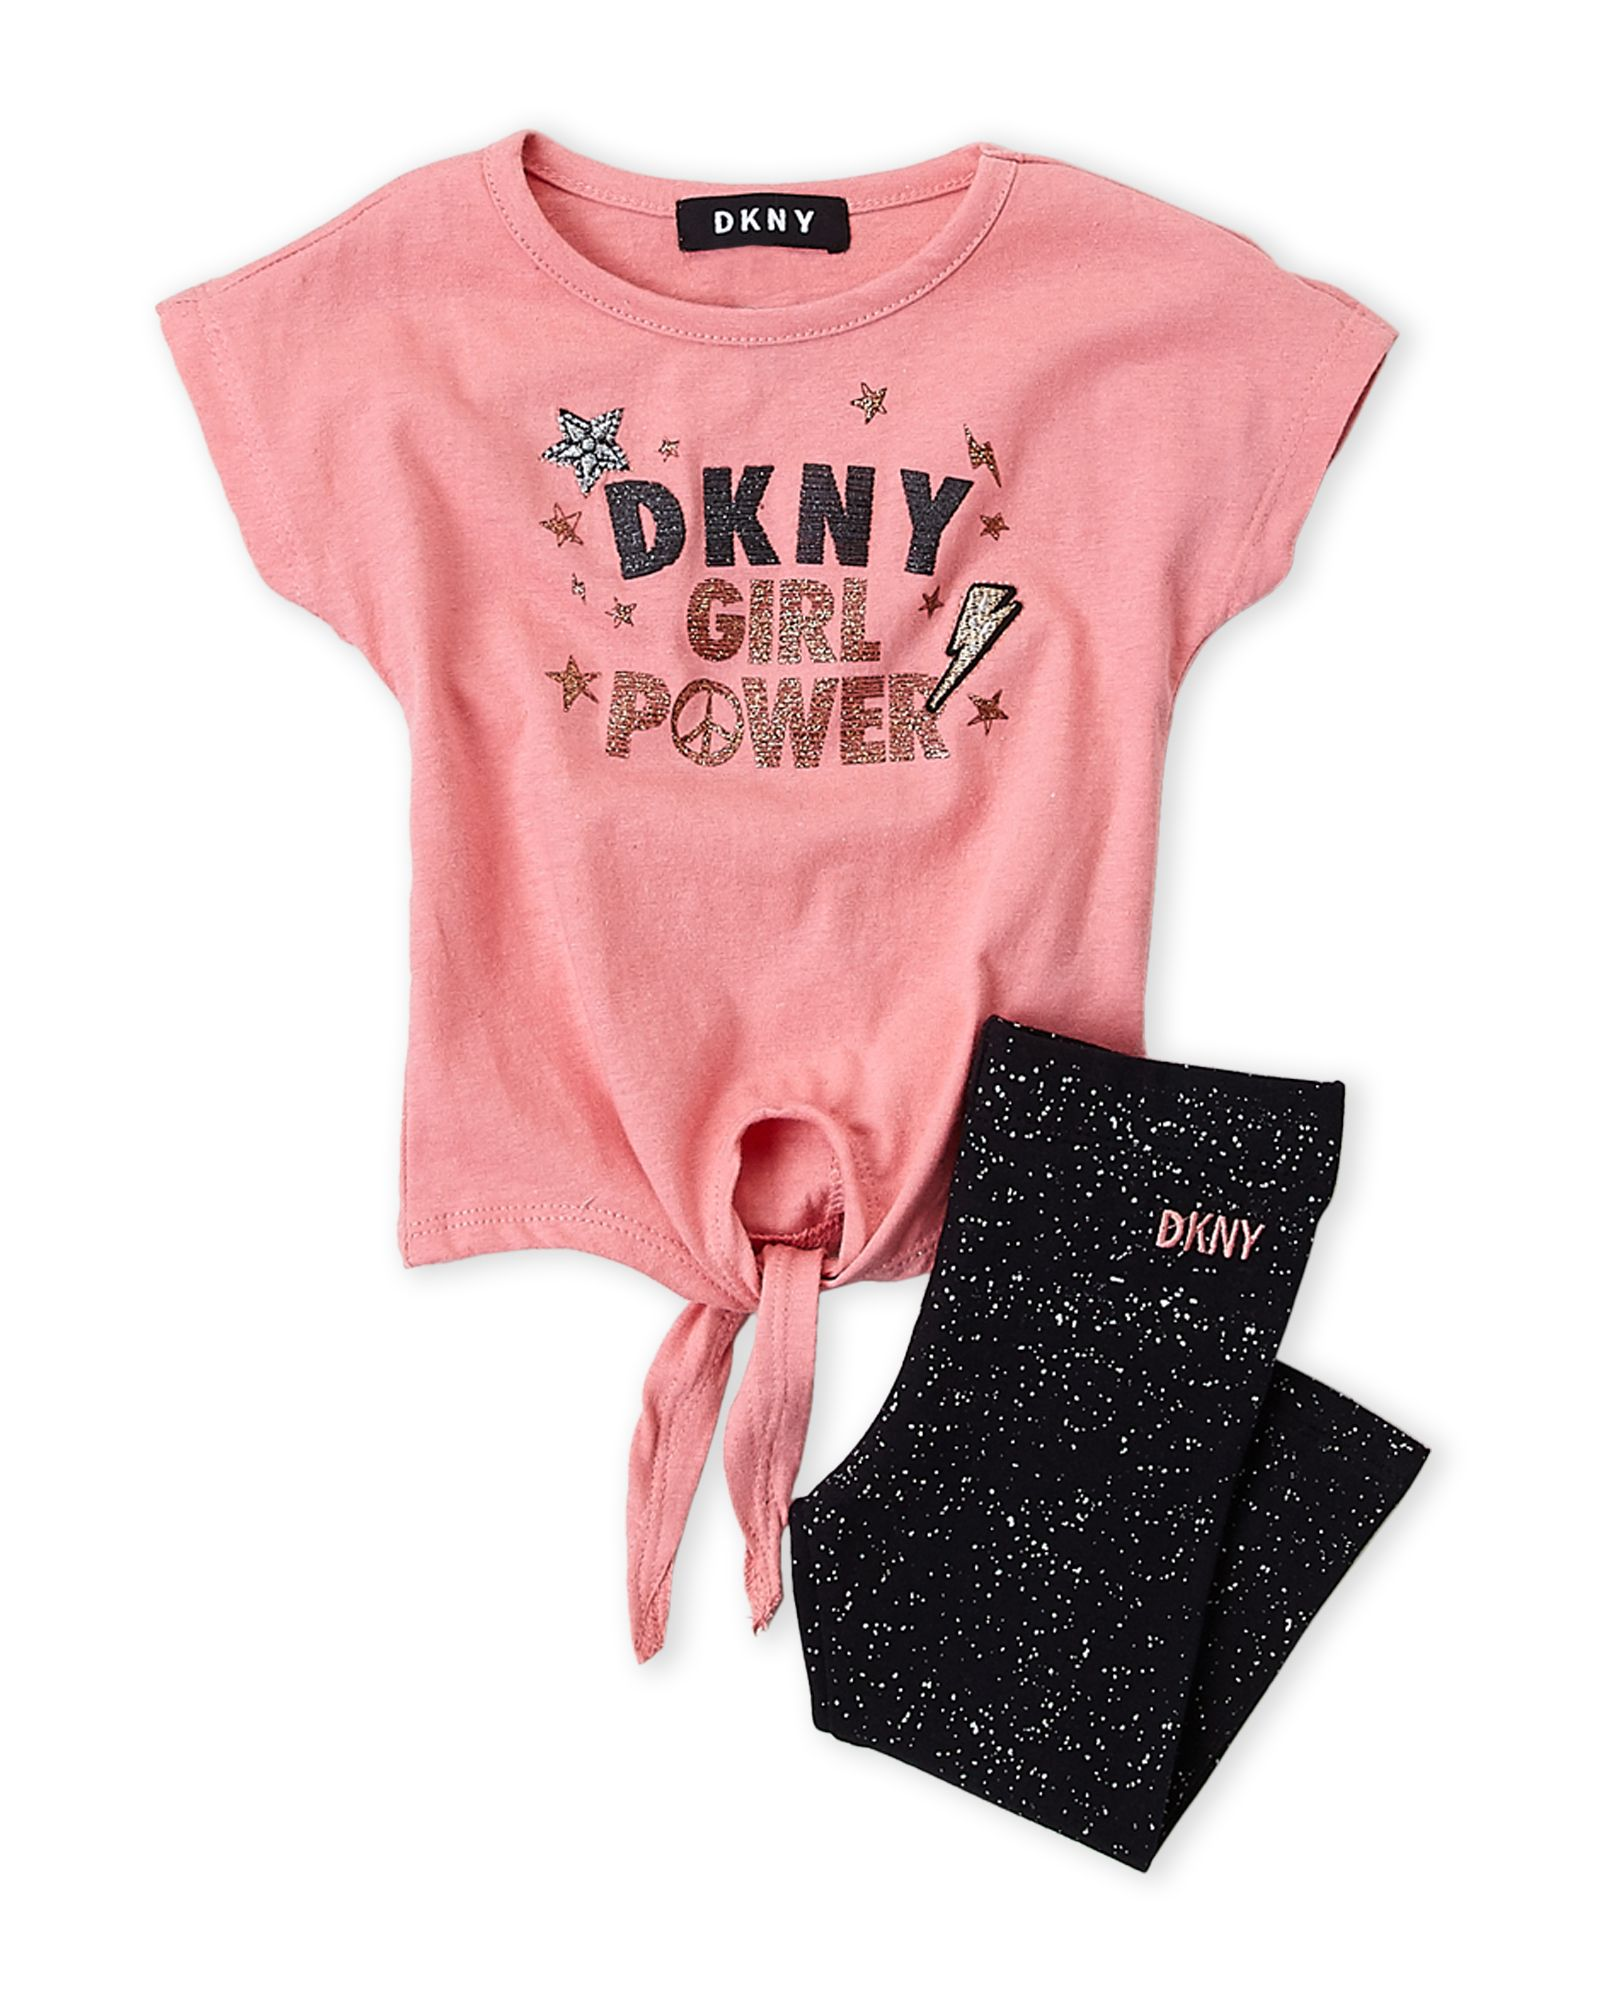 ef3821949 Girls 4-6x) Two-Piece Graphic Tee & Legging Set | *Apparel ...